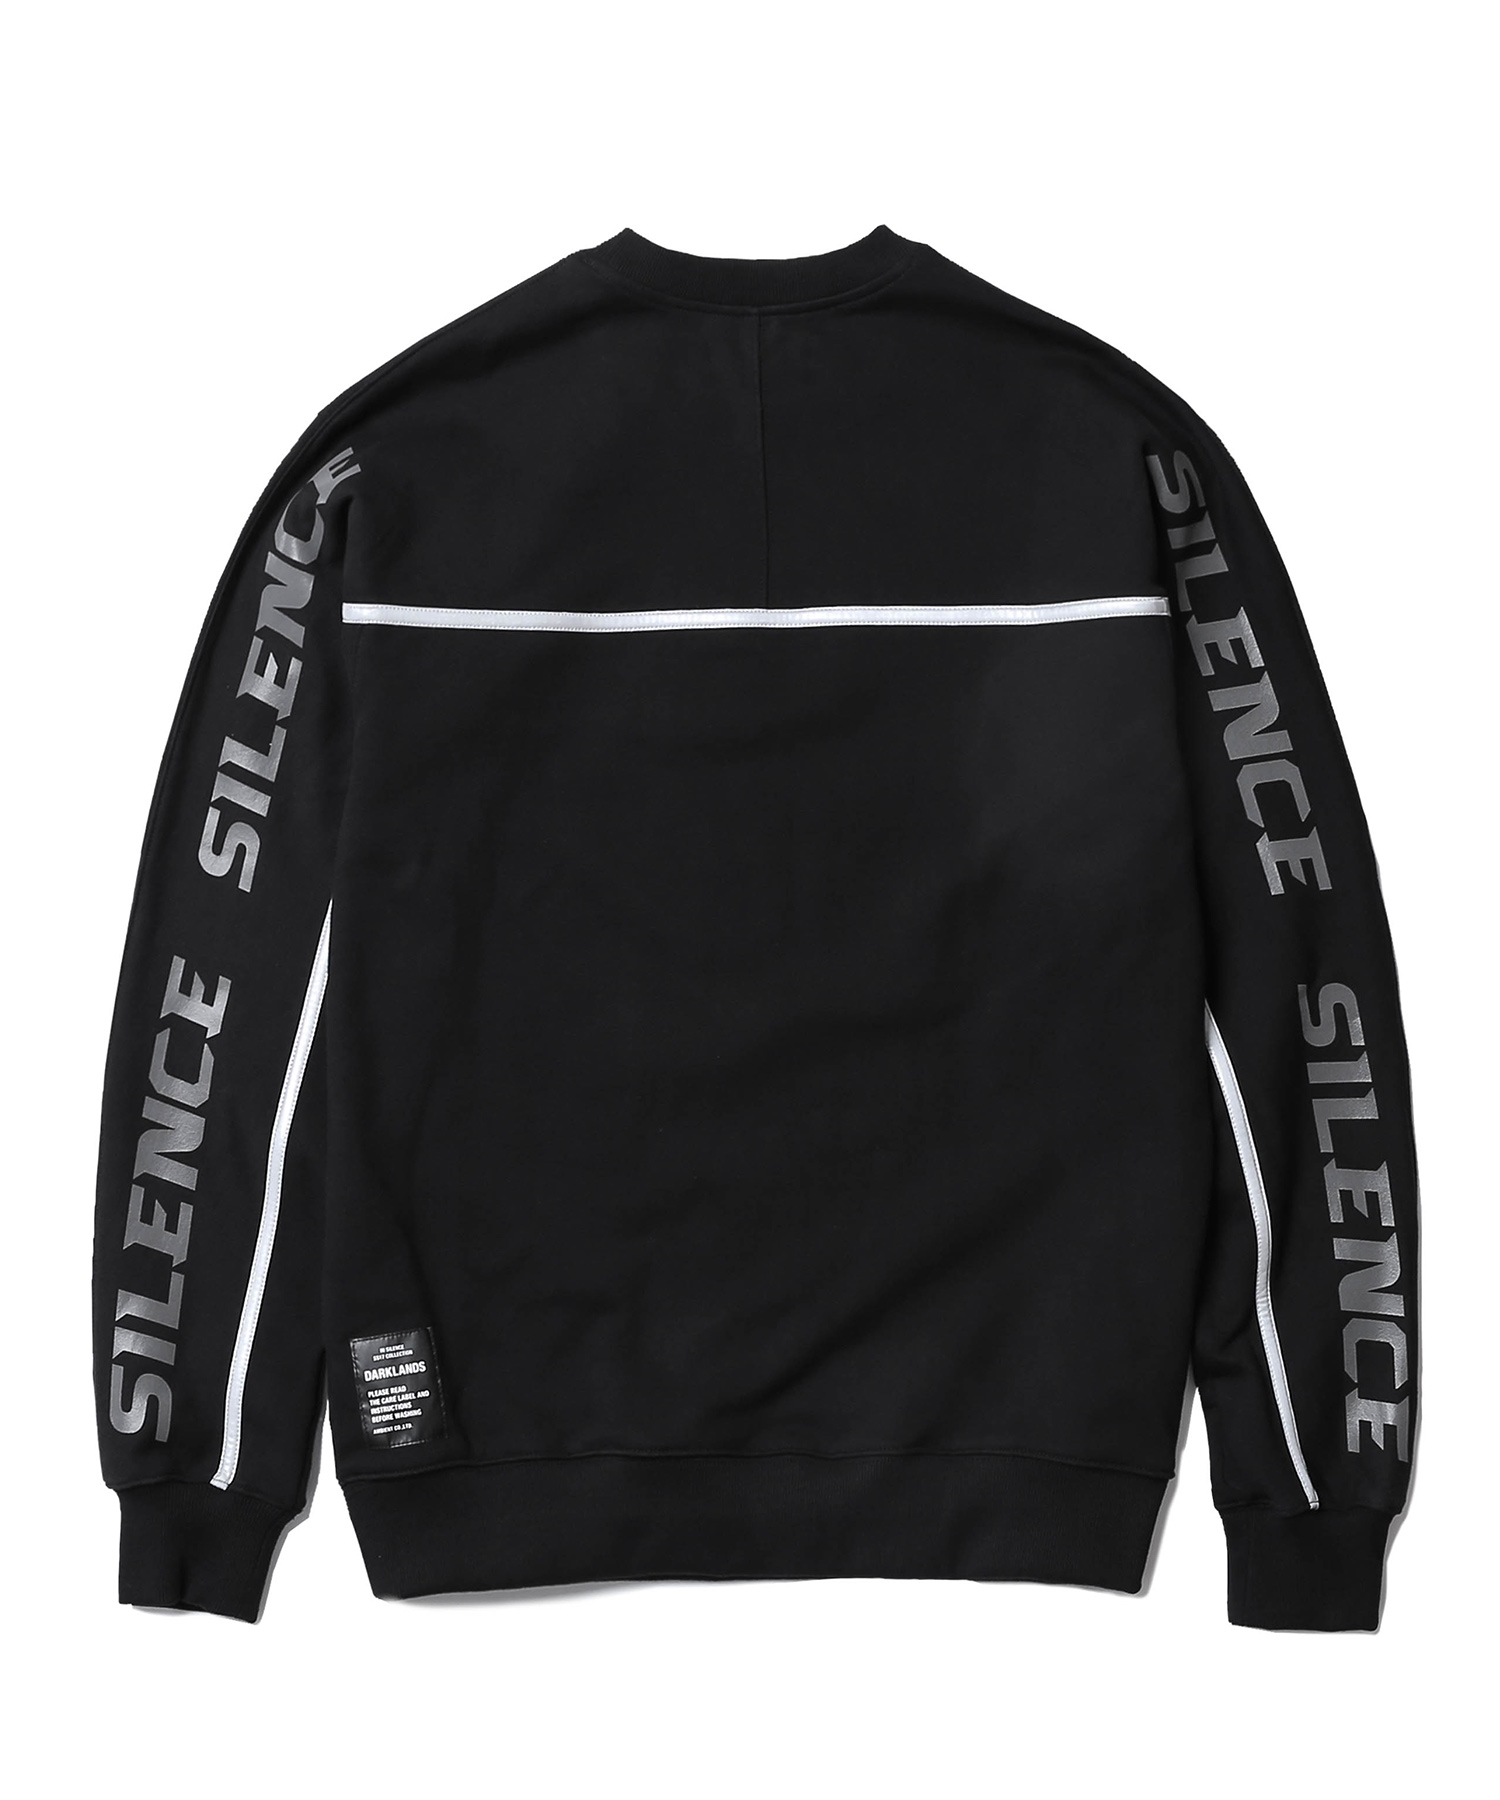 Reflective Sweatshirt